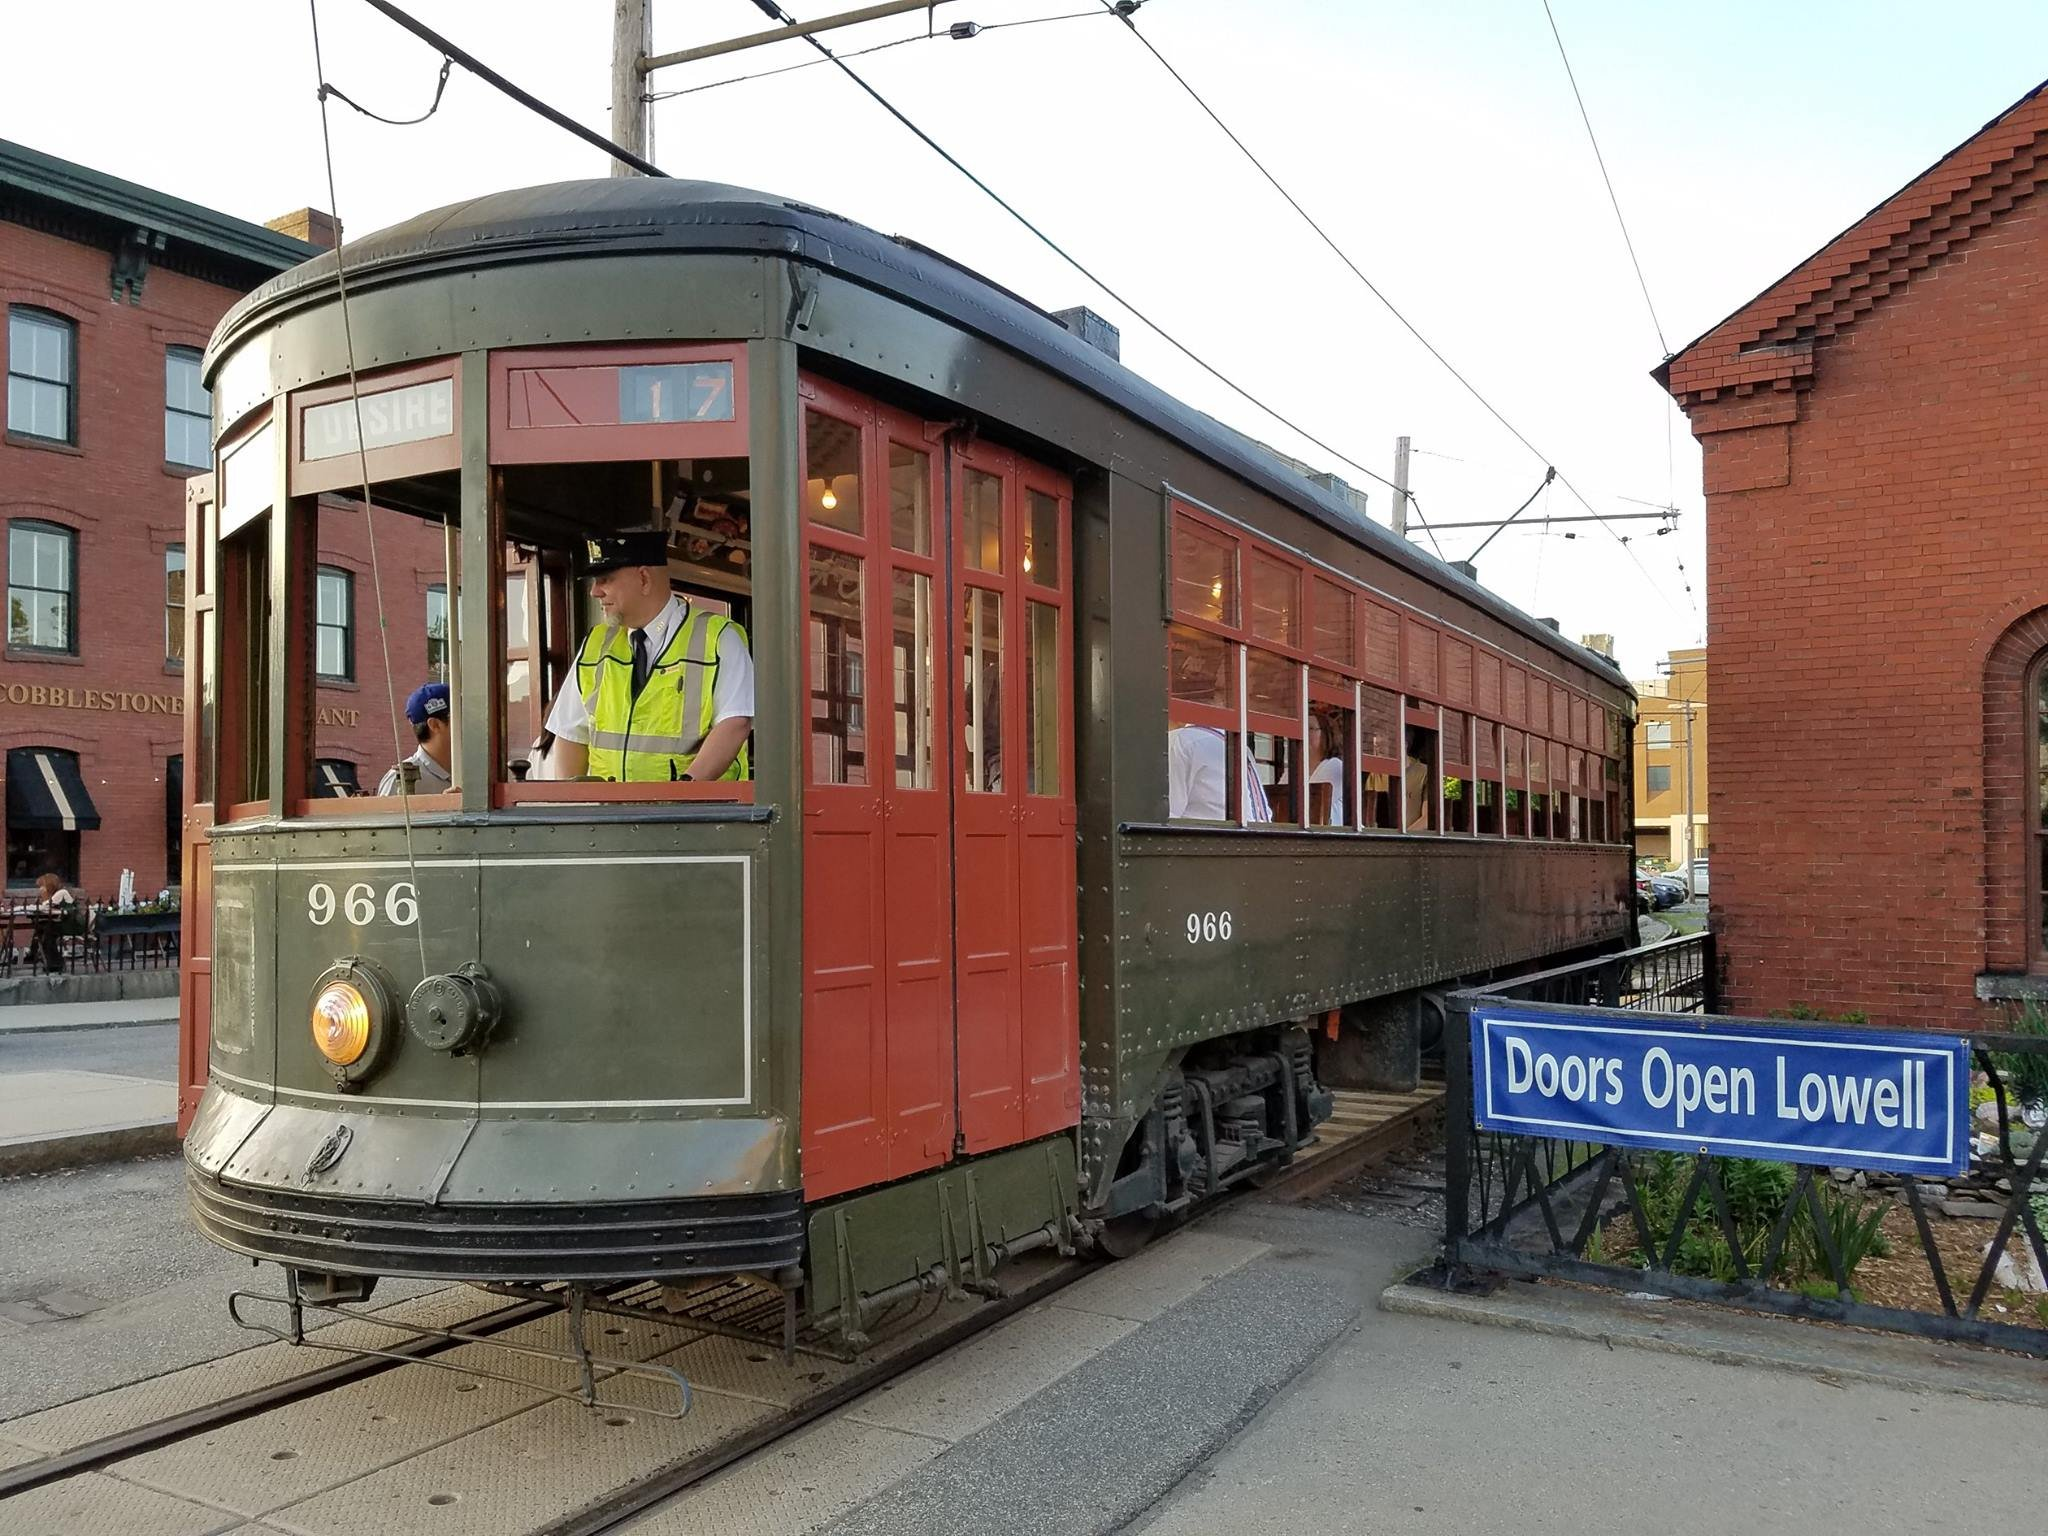 The National Trolley Museum's New Orleans 966 car (image from the National Park Service)